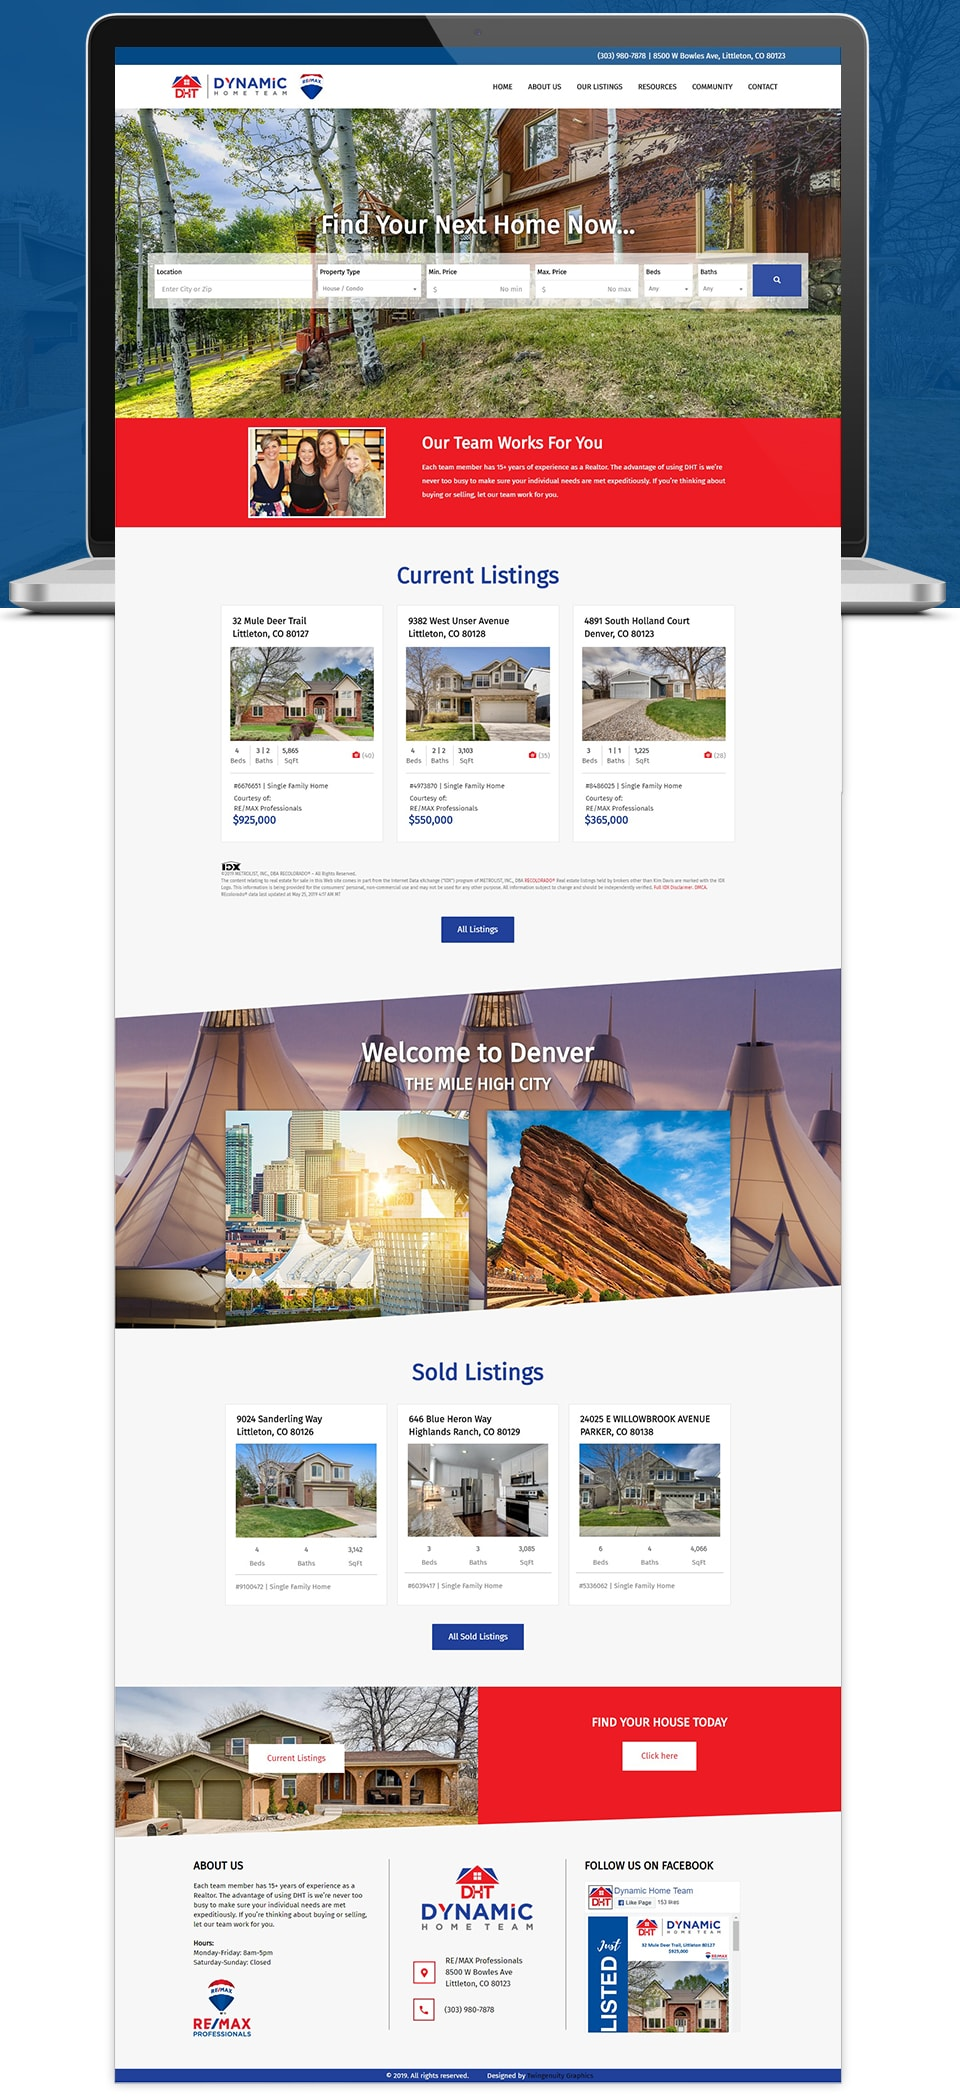 dynamic home team realtors website home page